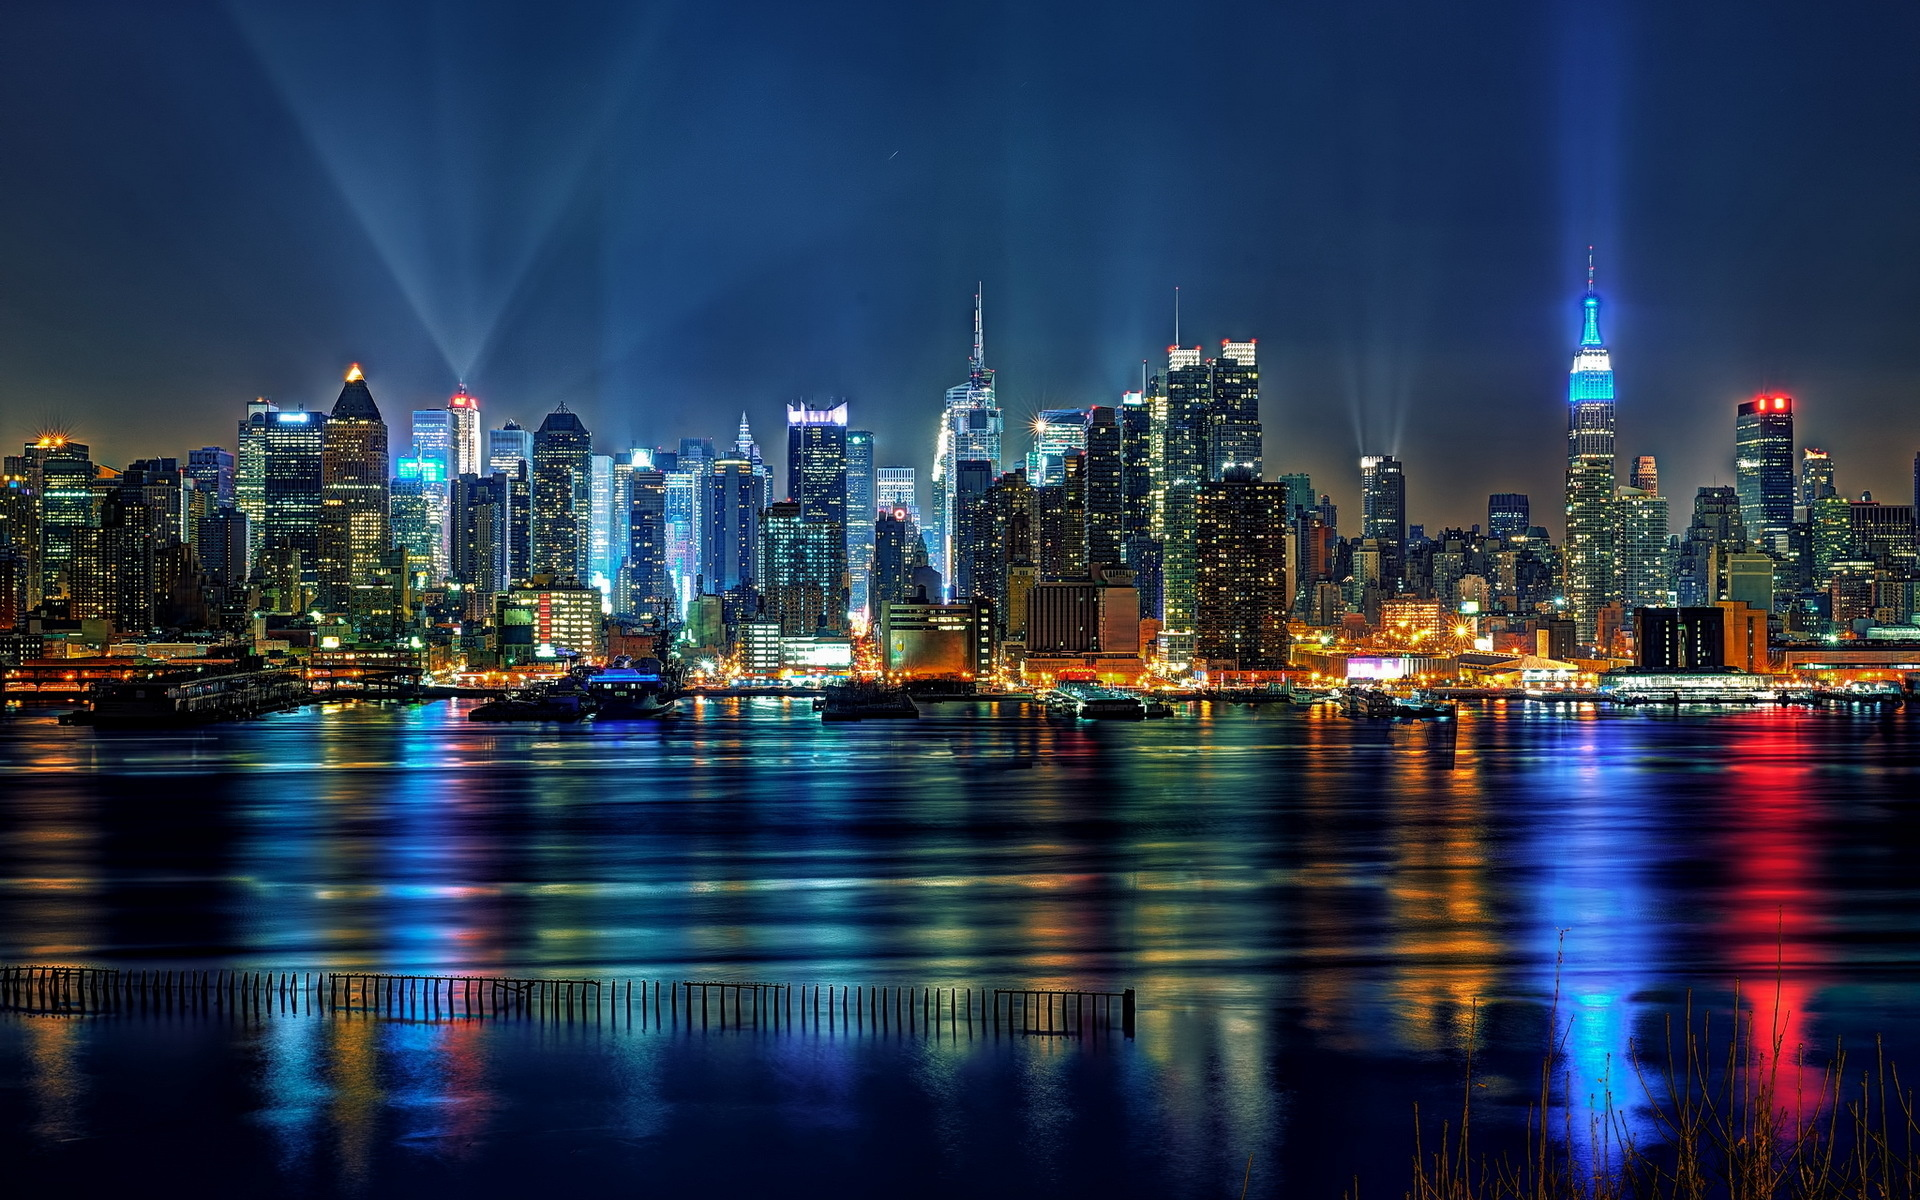 New york city wallpaper skyline wallpapersafari - New york skyline computer wallpaper ...